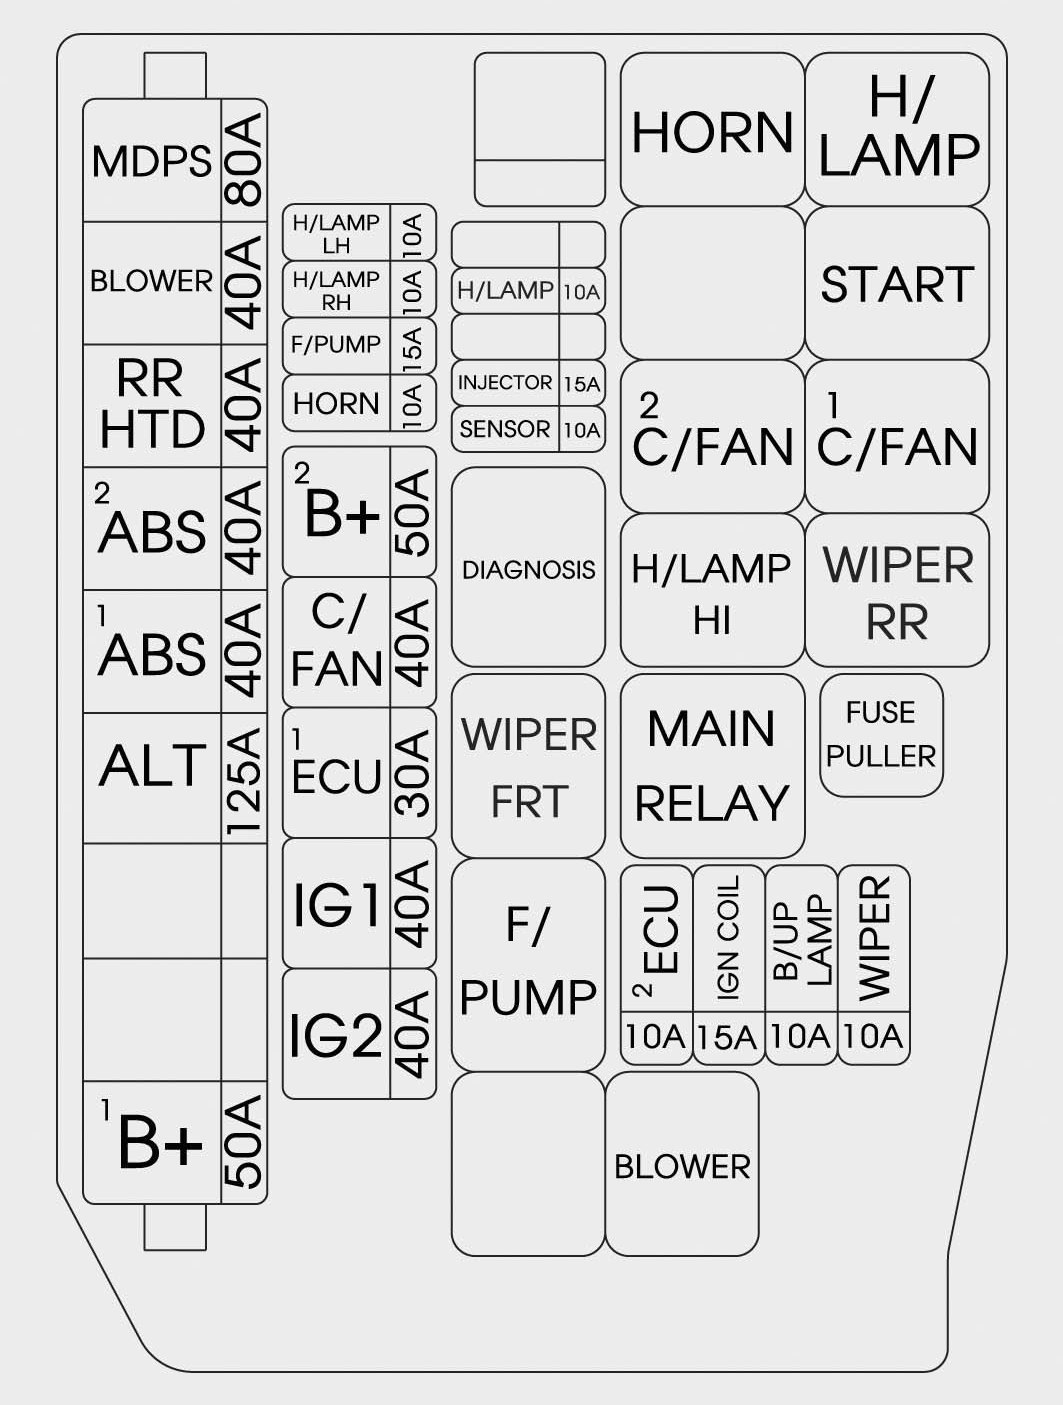 Http Post 2008 1968 Triumph Tr250 Wiring Diagram Hyundai Sonata Fuse Box Engine Compartment 2015